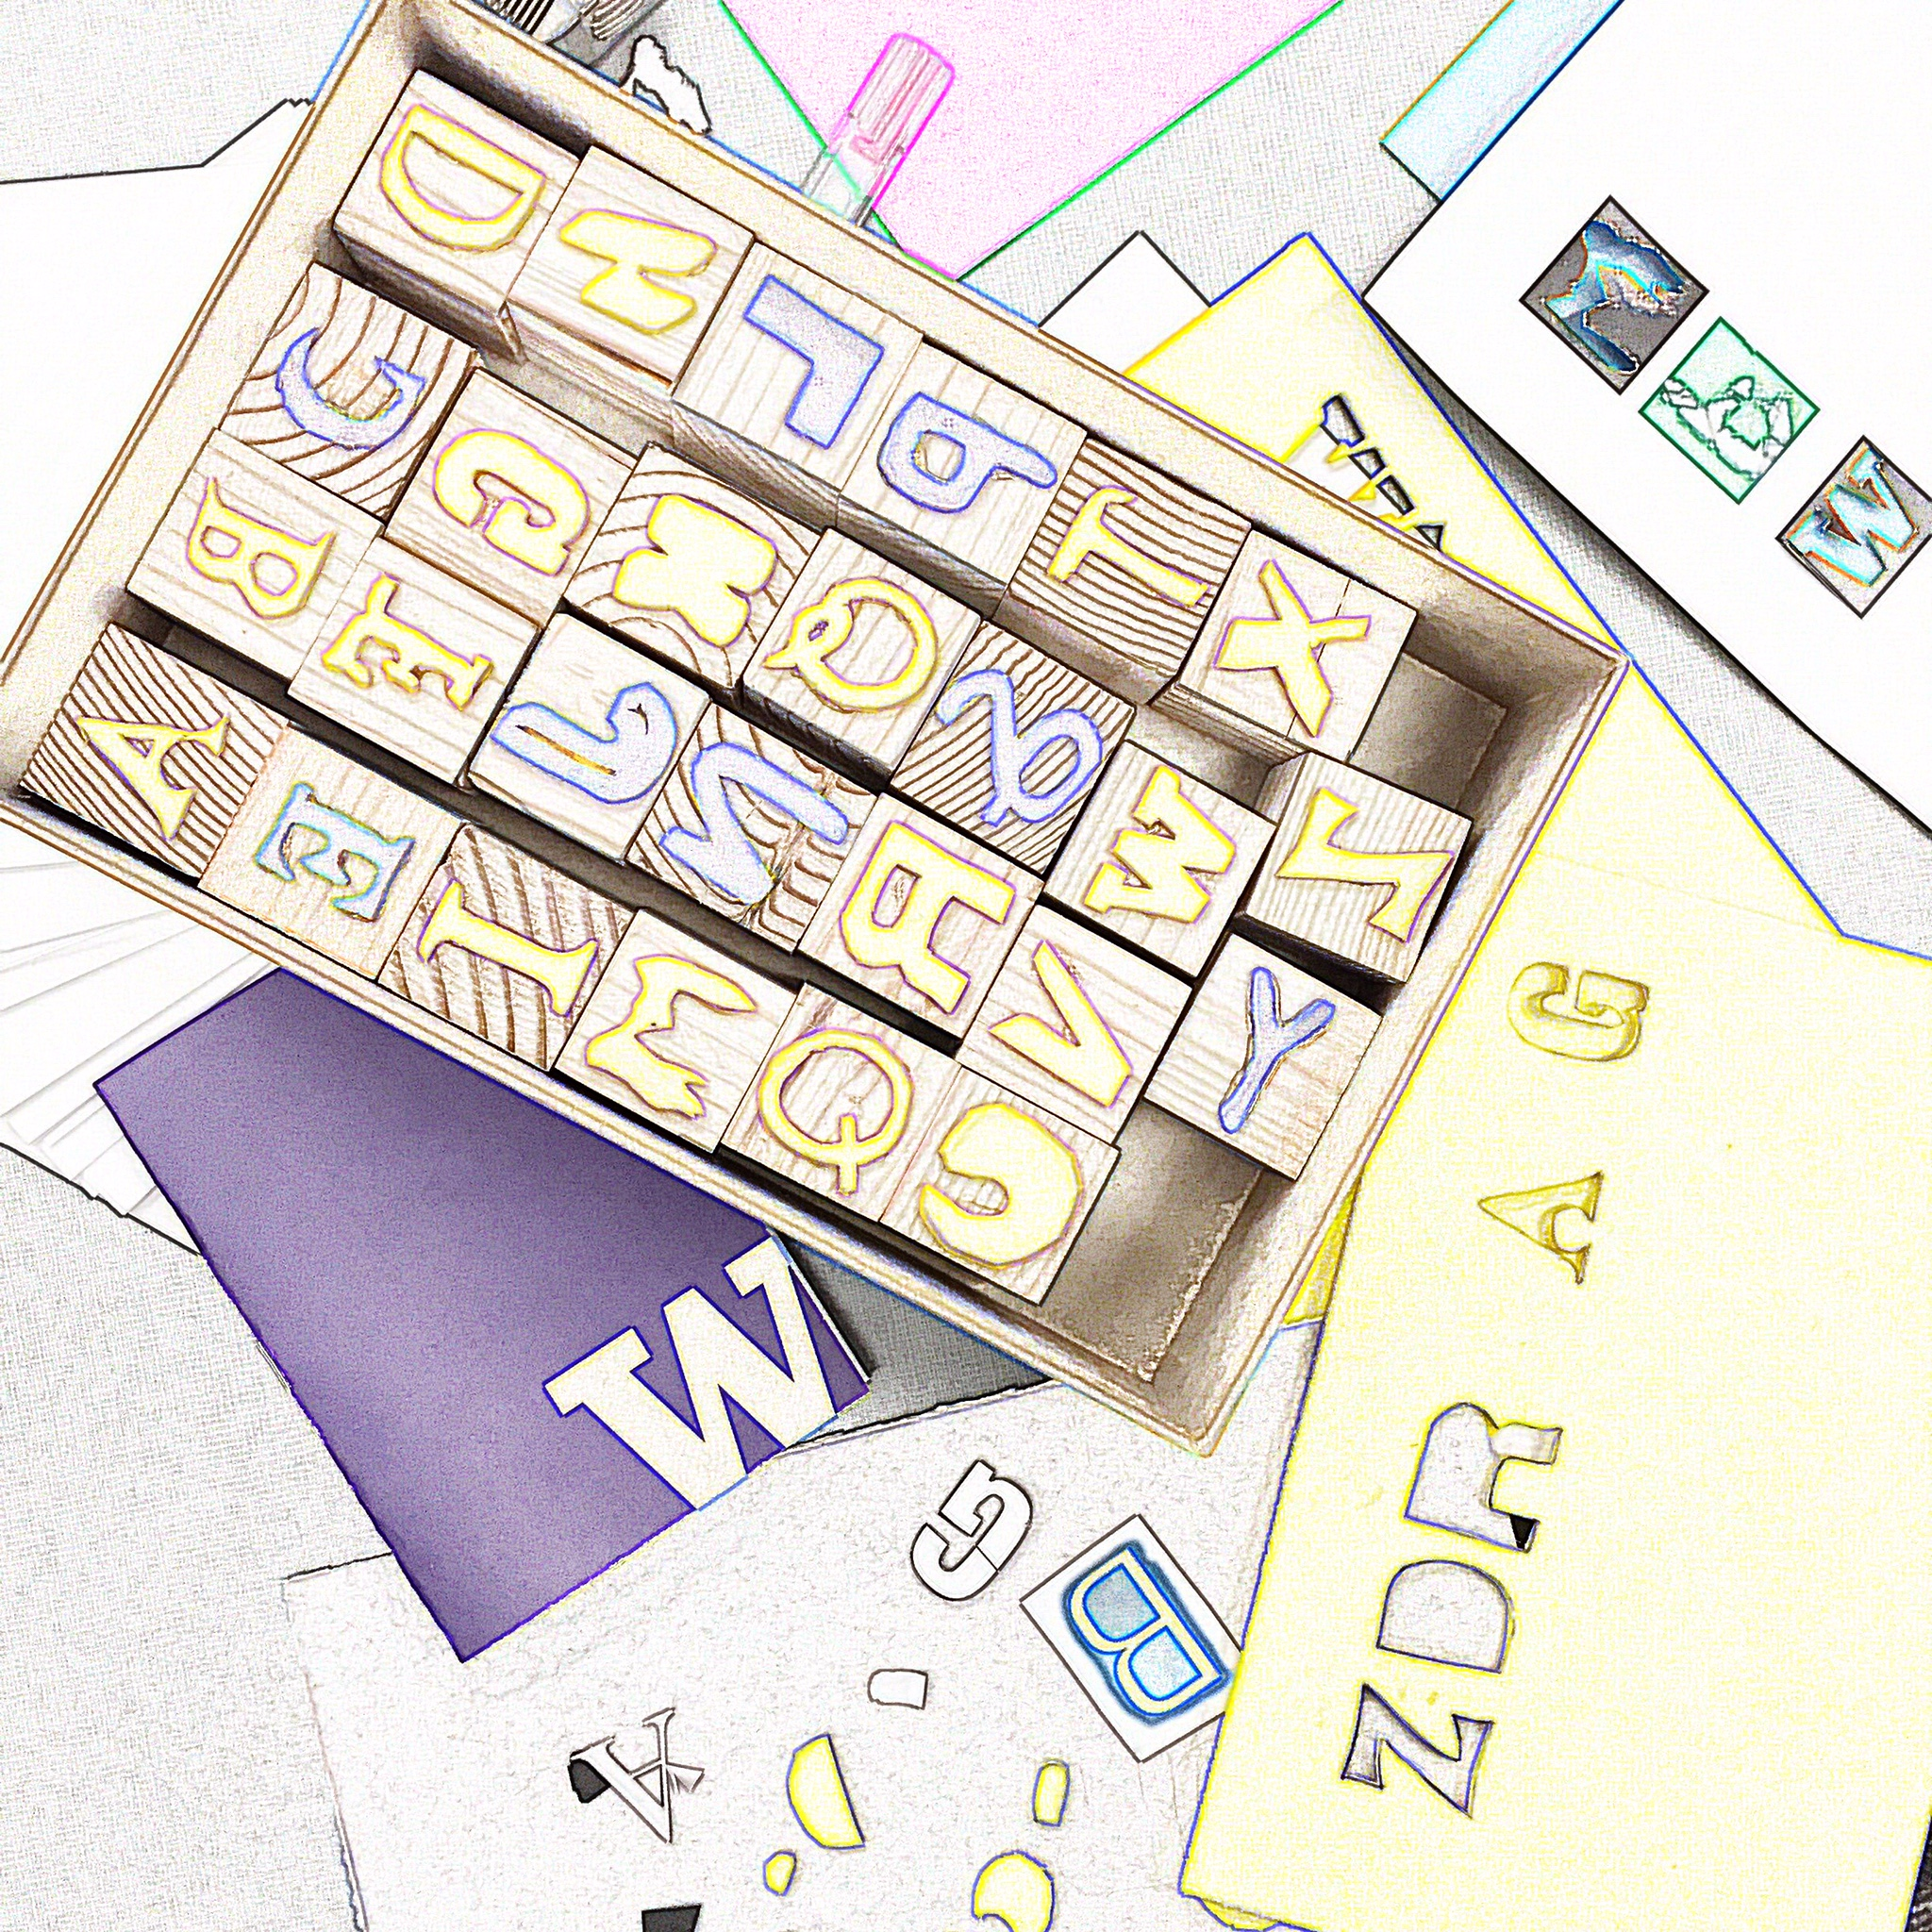 The making process of letter stamps